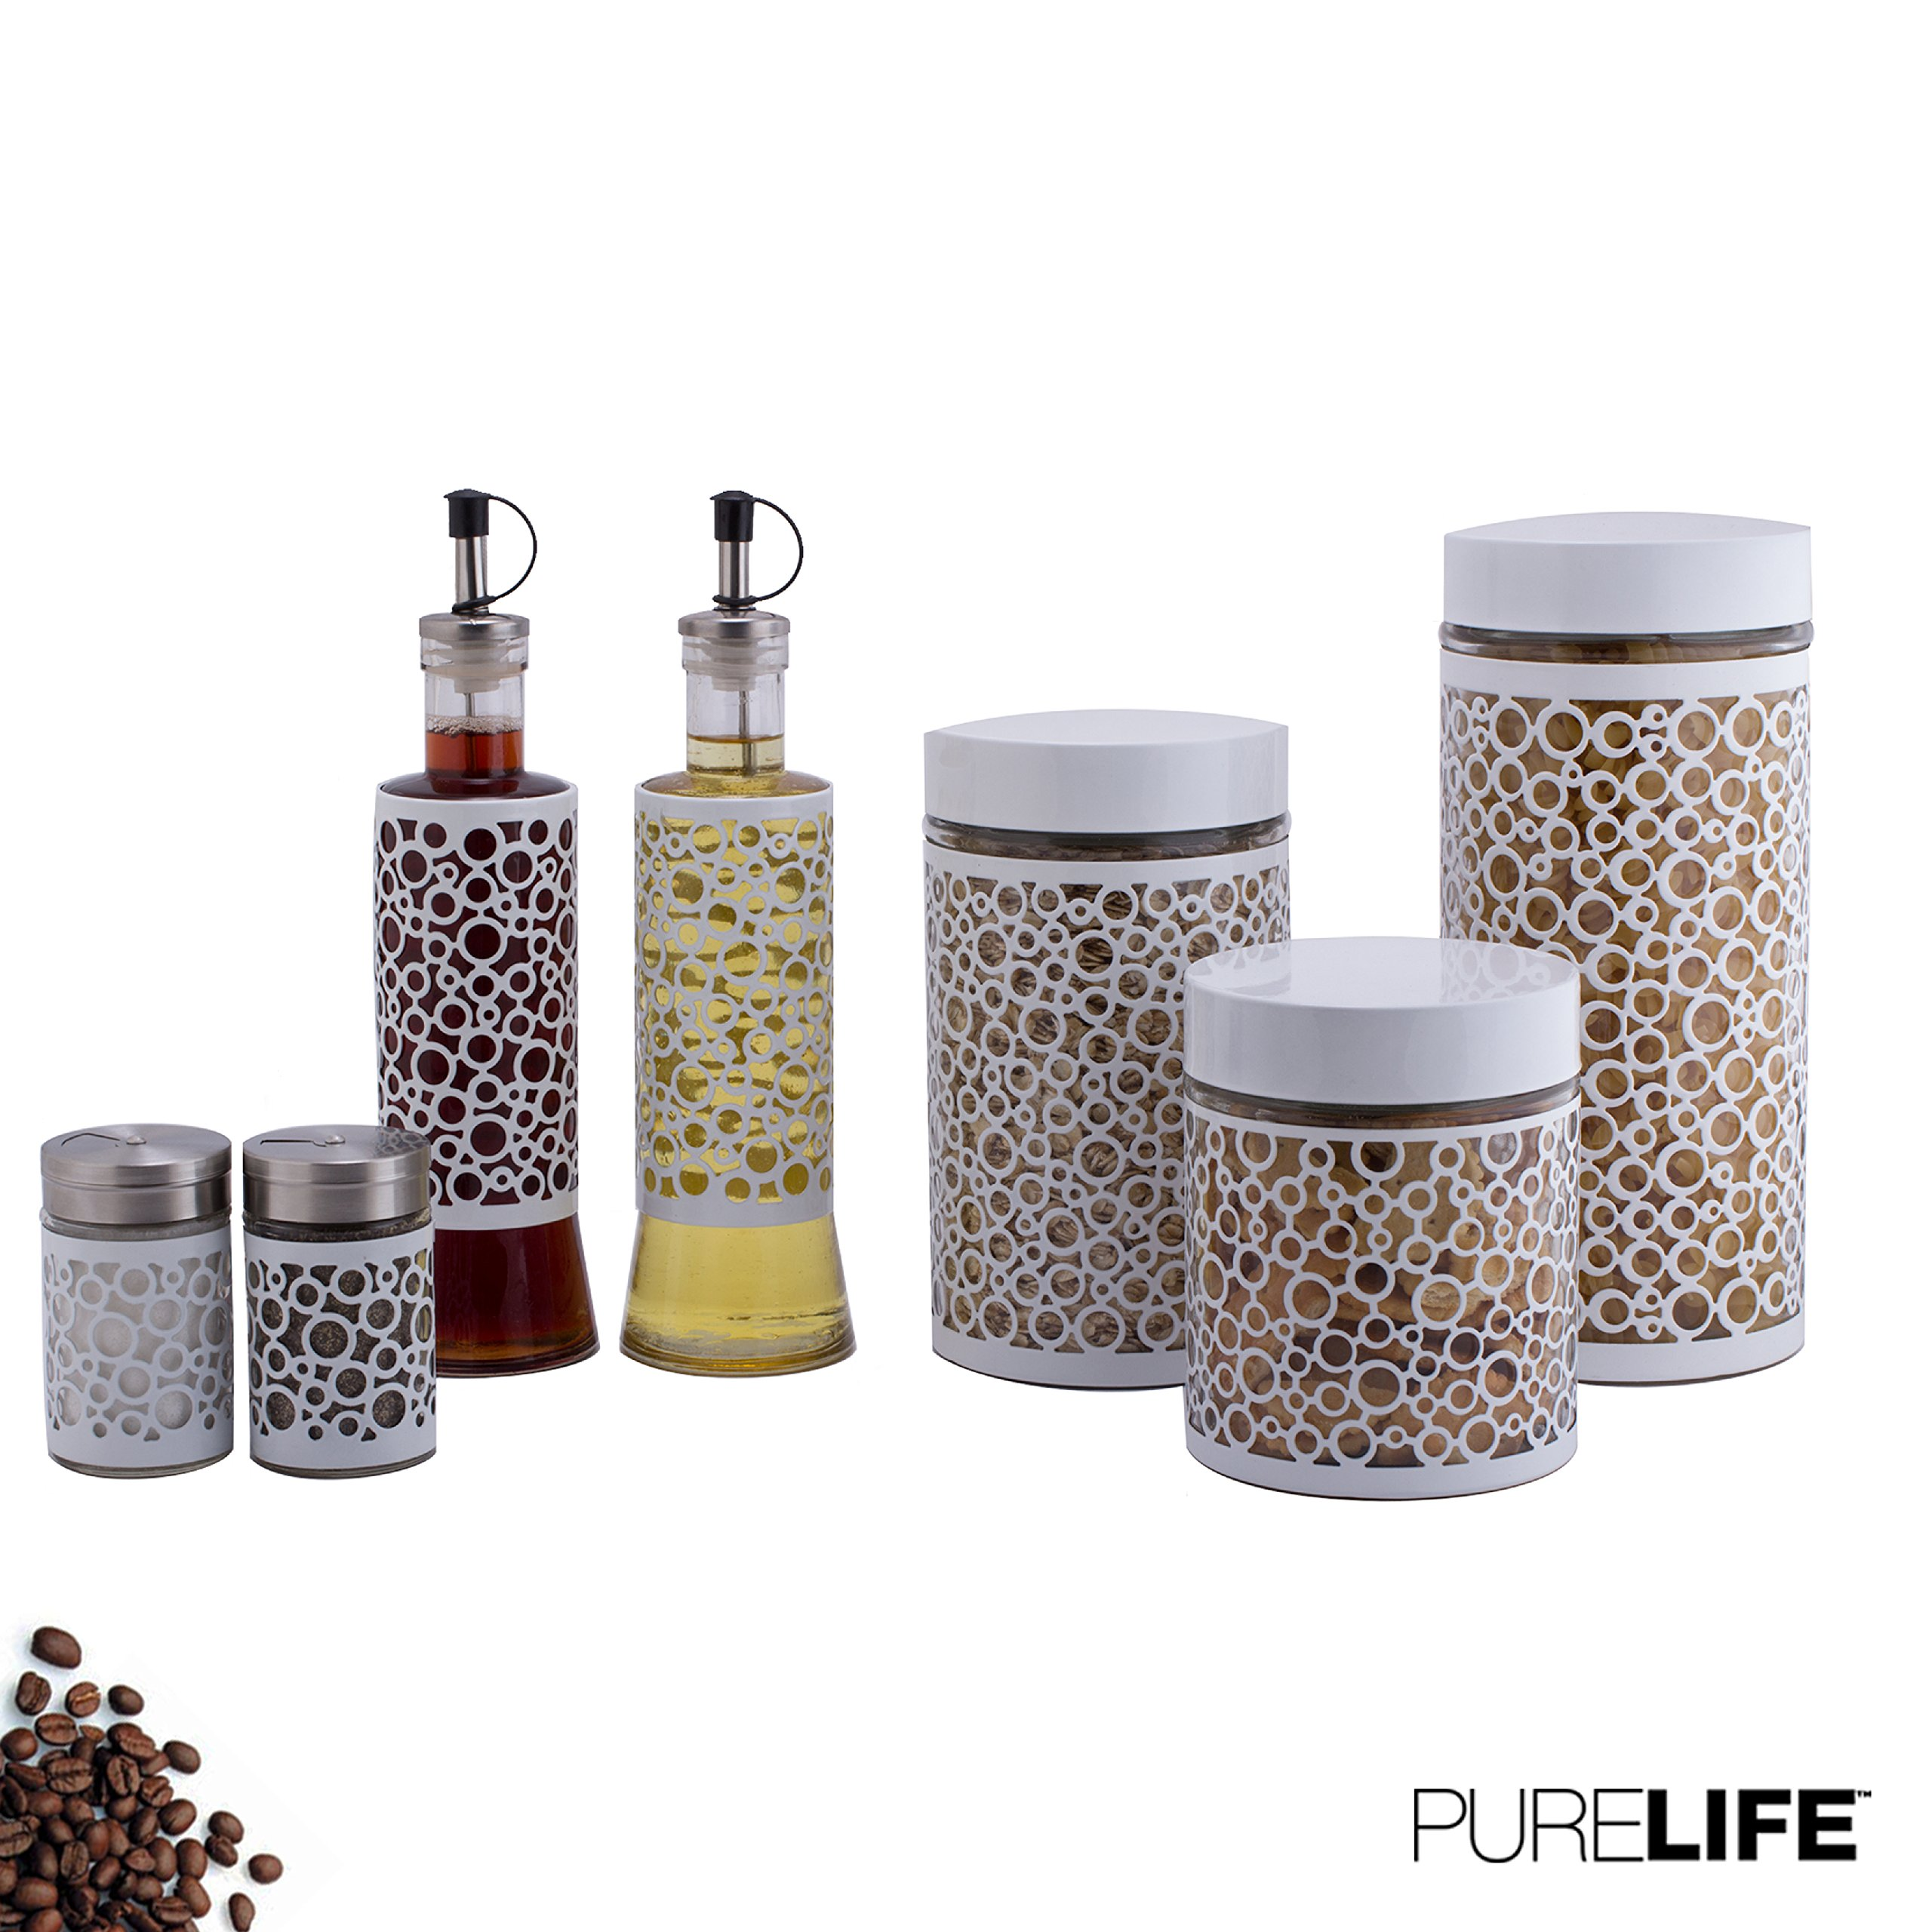 Canisters Sets for the Kitchen, Salt and Pepper Shakers & Vinegar and Olive Oil Dispensers 7 Pc Set - Glass Food Storage Containers W/Condiment Jars & Refillable Bottles - Covered in White Metal